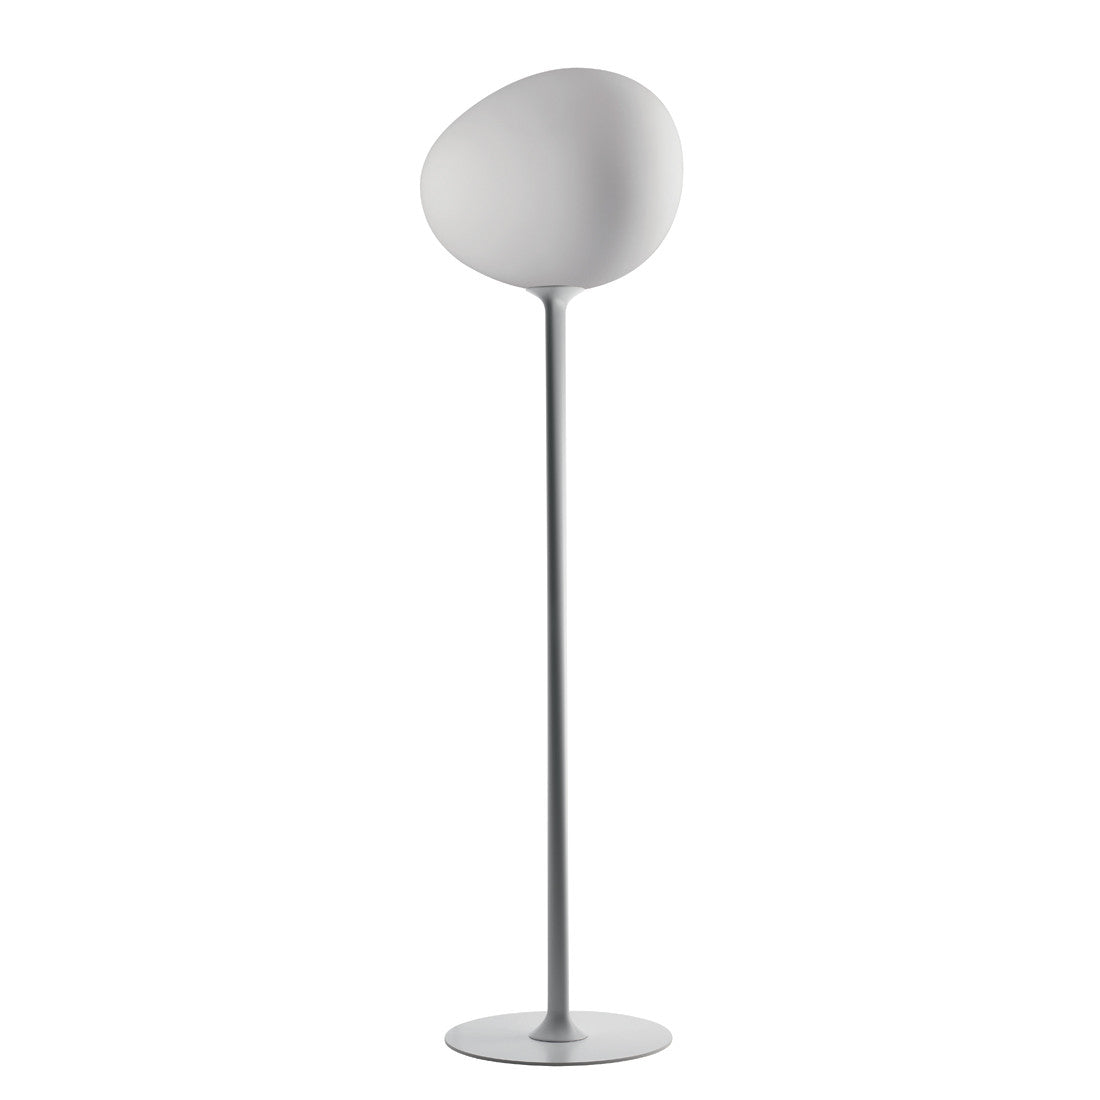 Foscarini Lights Gregg Floor Light By Foscarini